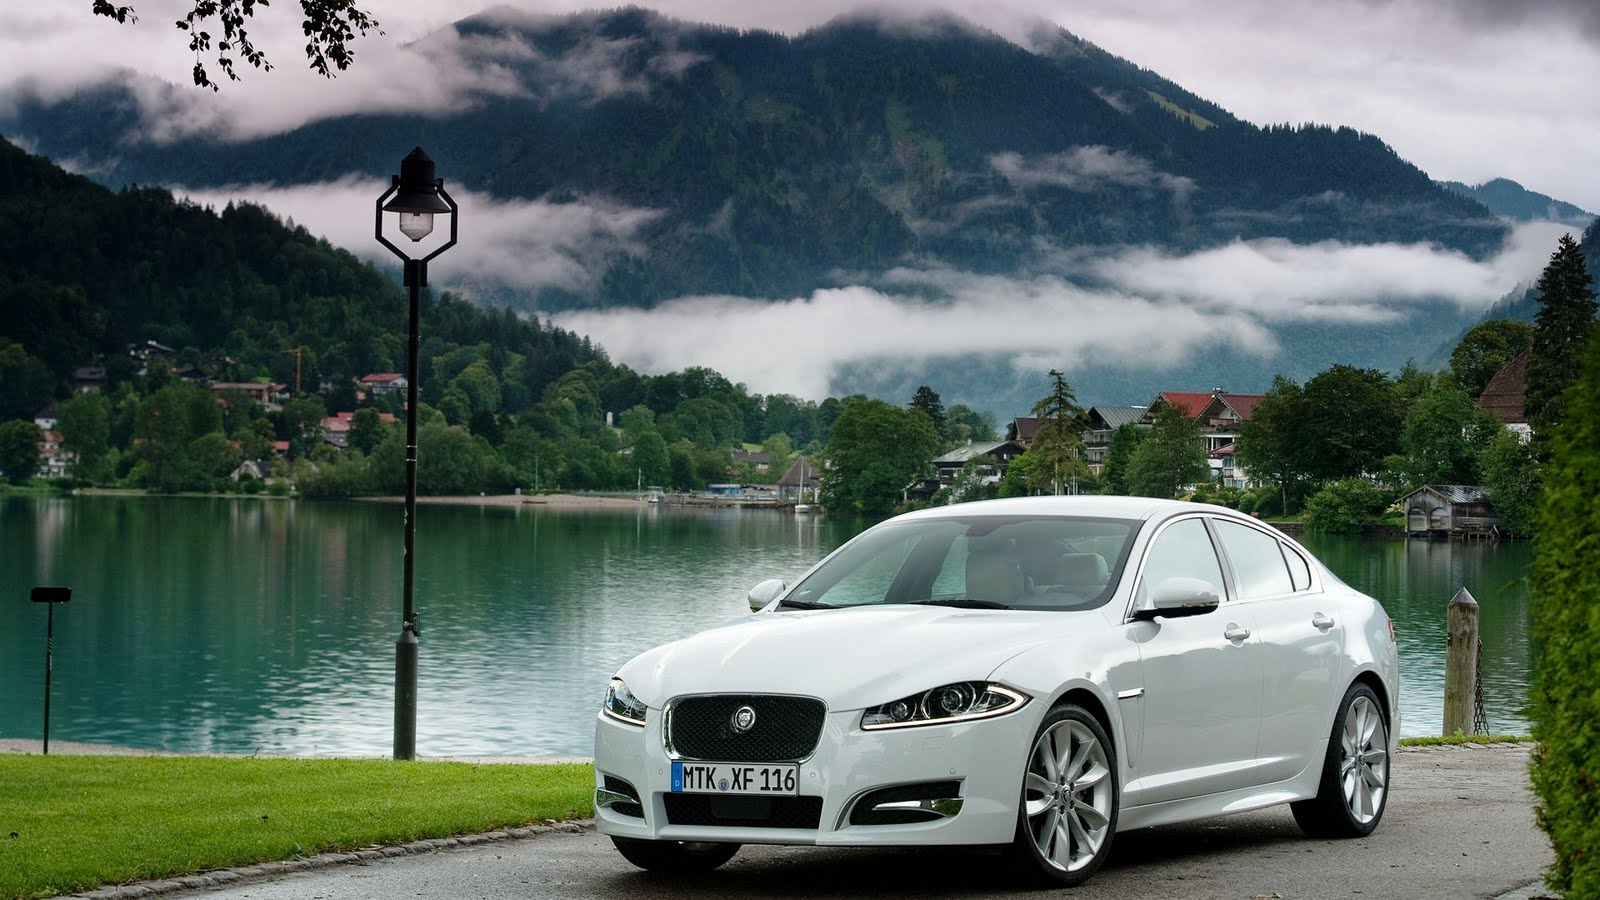 Full HD Exotic Car Wallpapers Jaguar XF